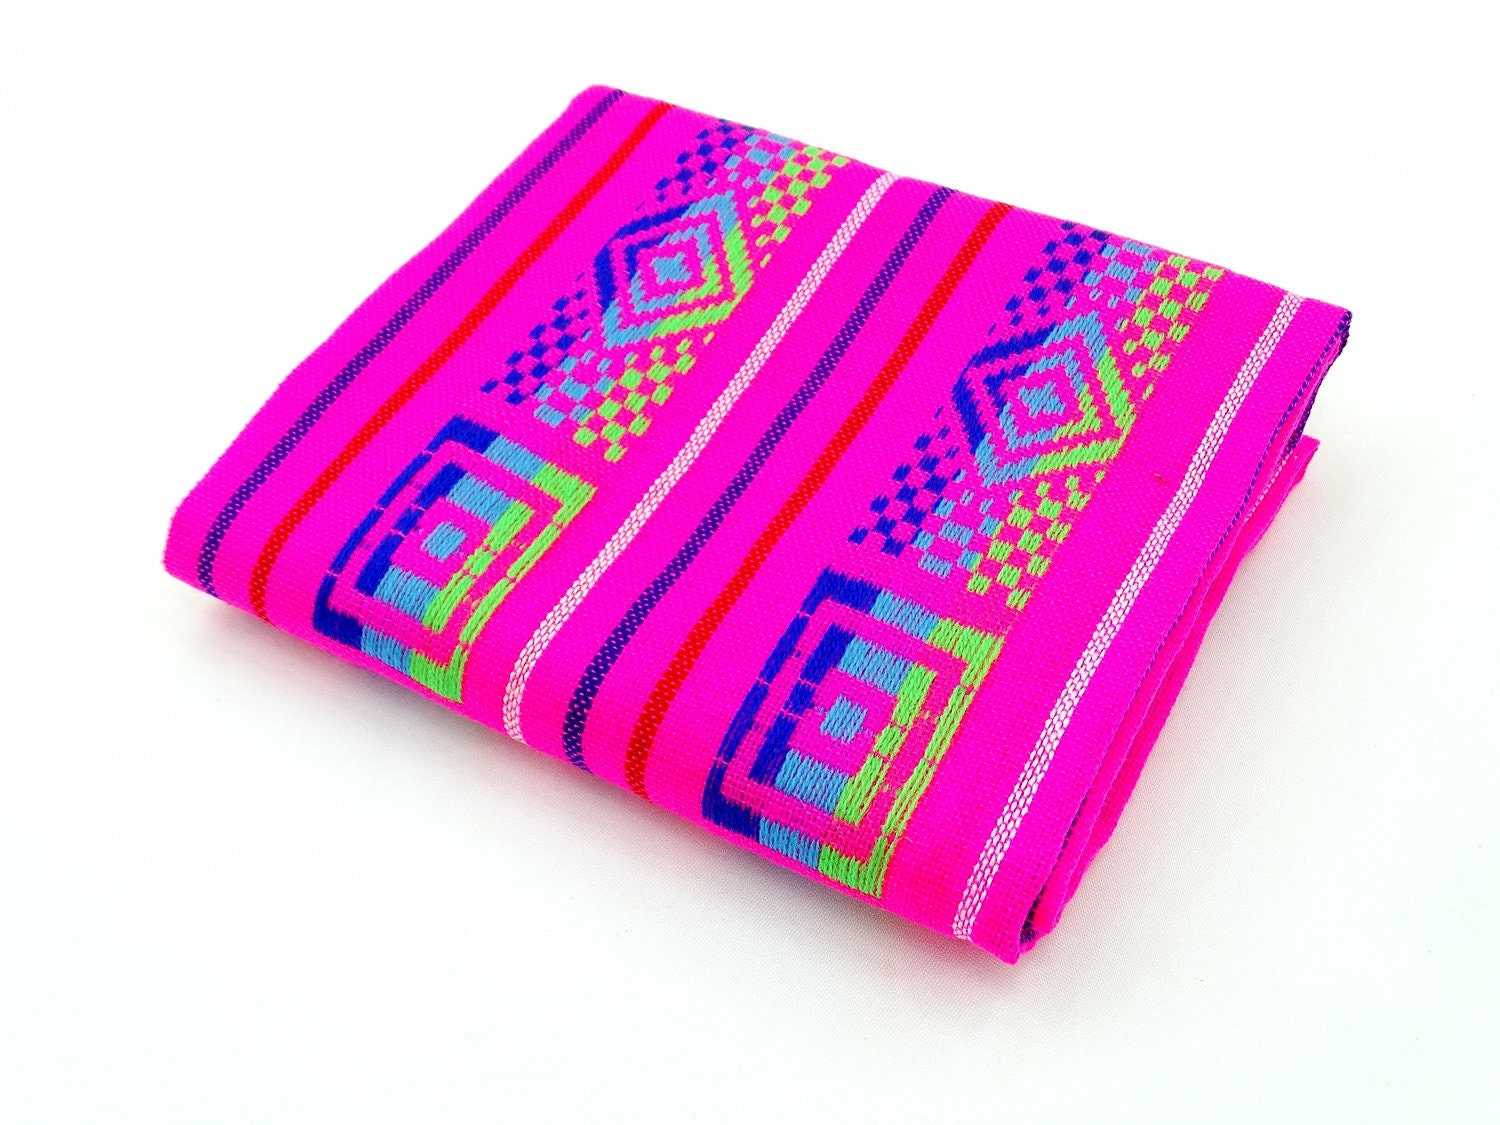 Mexican Fabric Aztec Fabric Tribal Fabric by the yard Pink